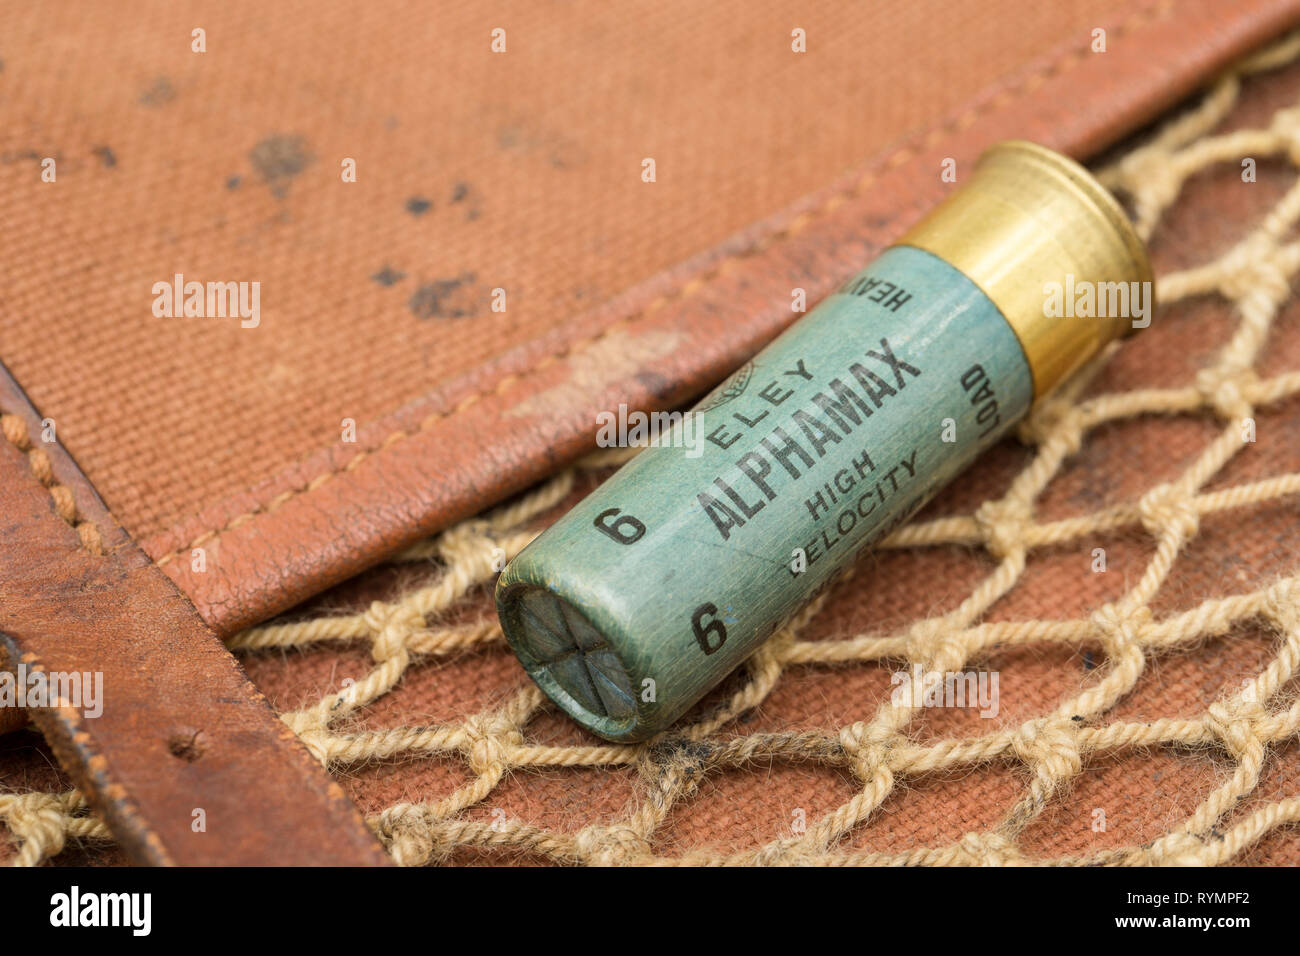 An old paper cased Eley Alphamax high velocity 16-bore, or